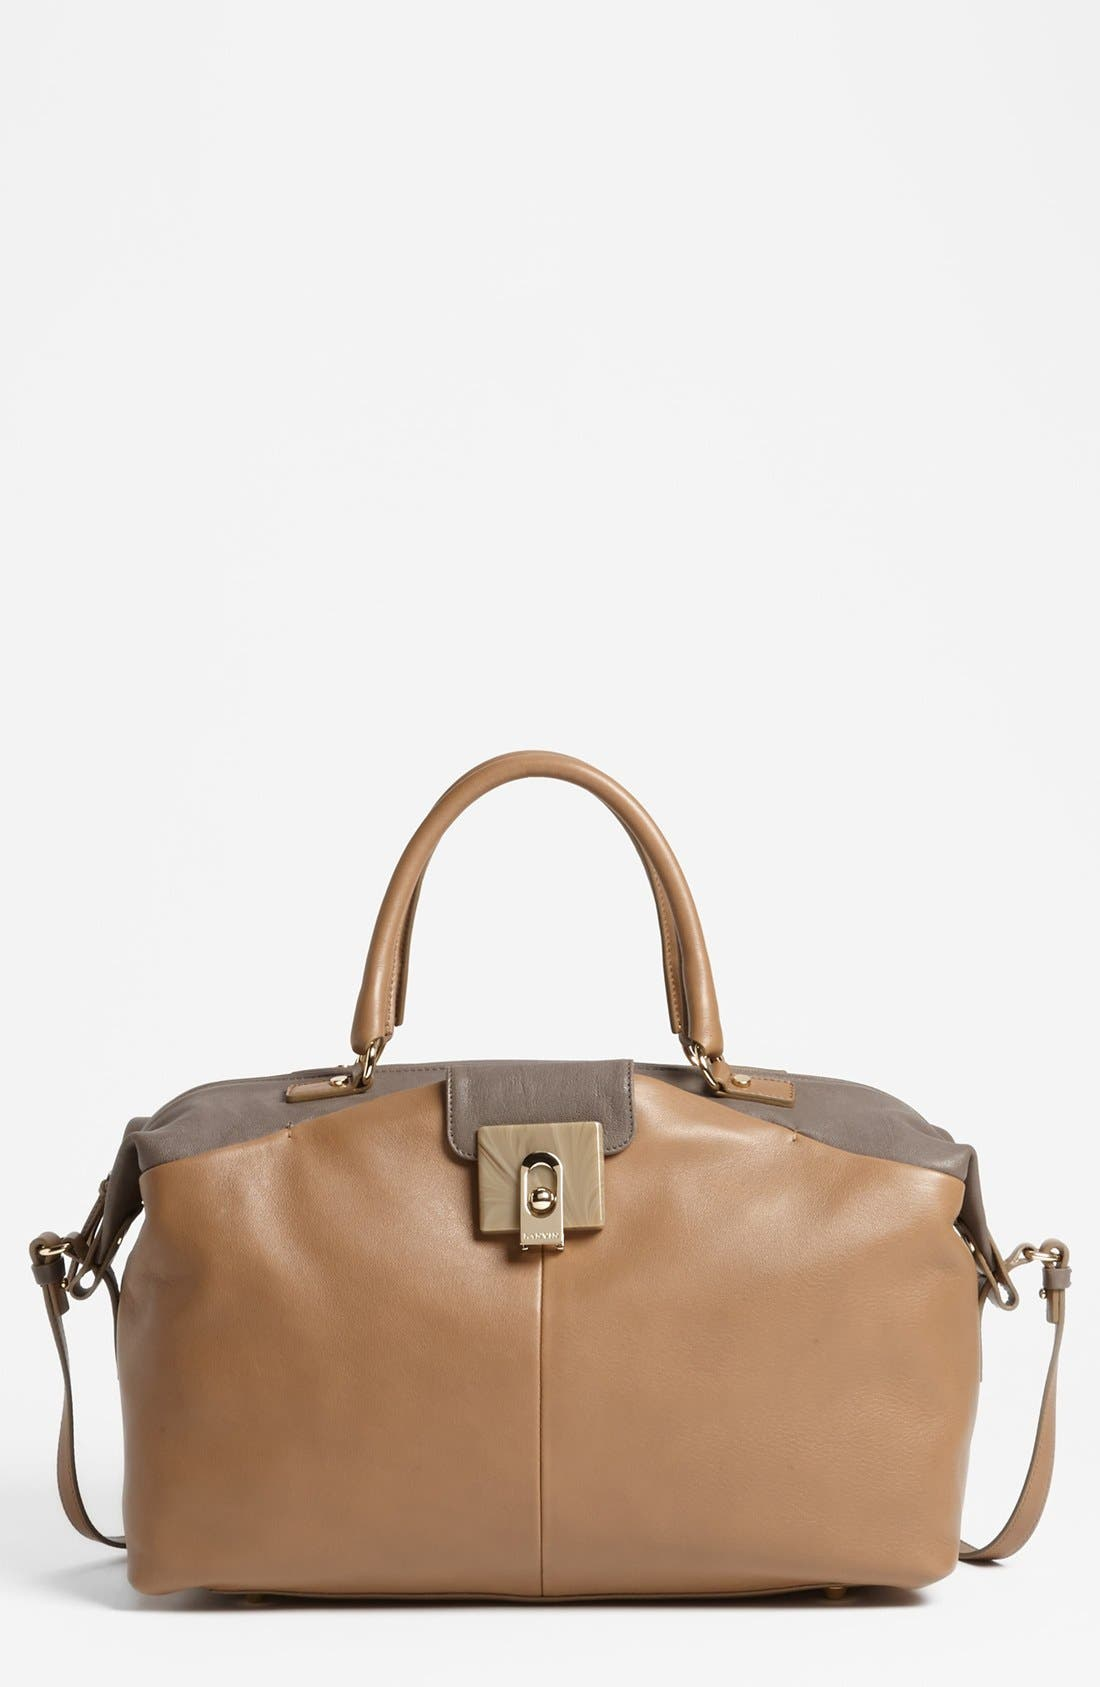 Alternate Image 1 Selected - Lanvin 'For Me - Large' Leather Tote